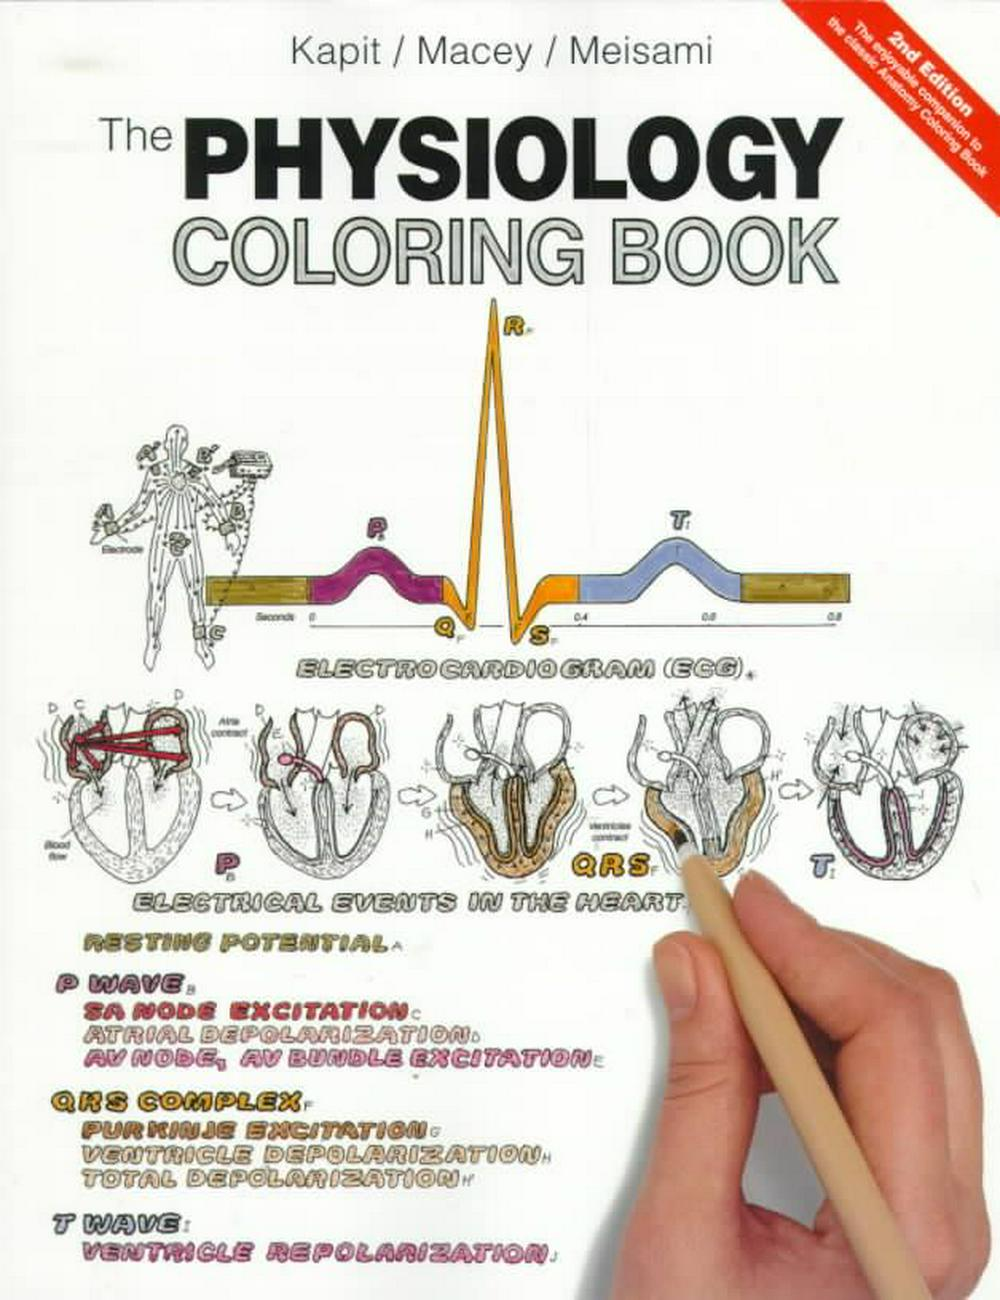 Booko: Comparing prices for The Physiology Coloring Book